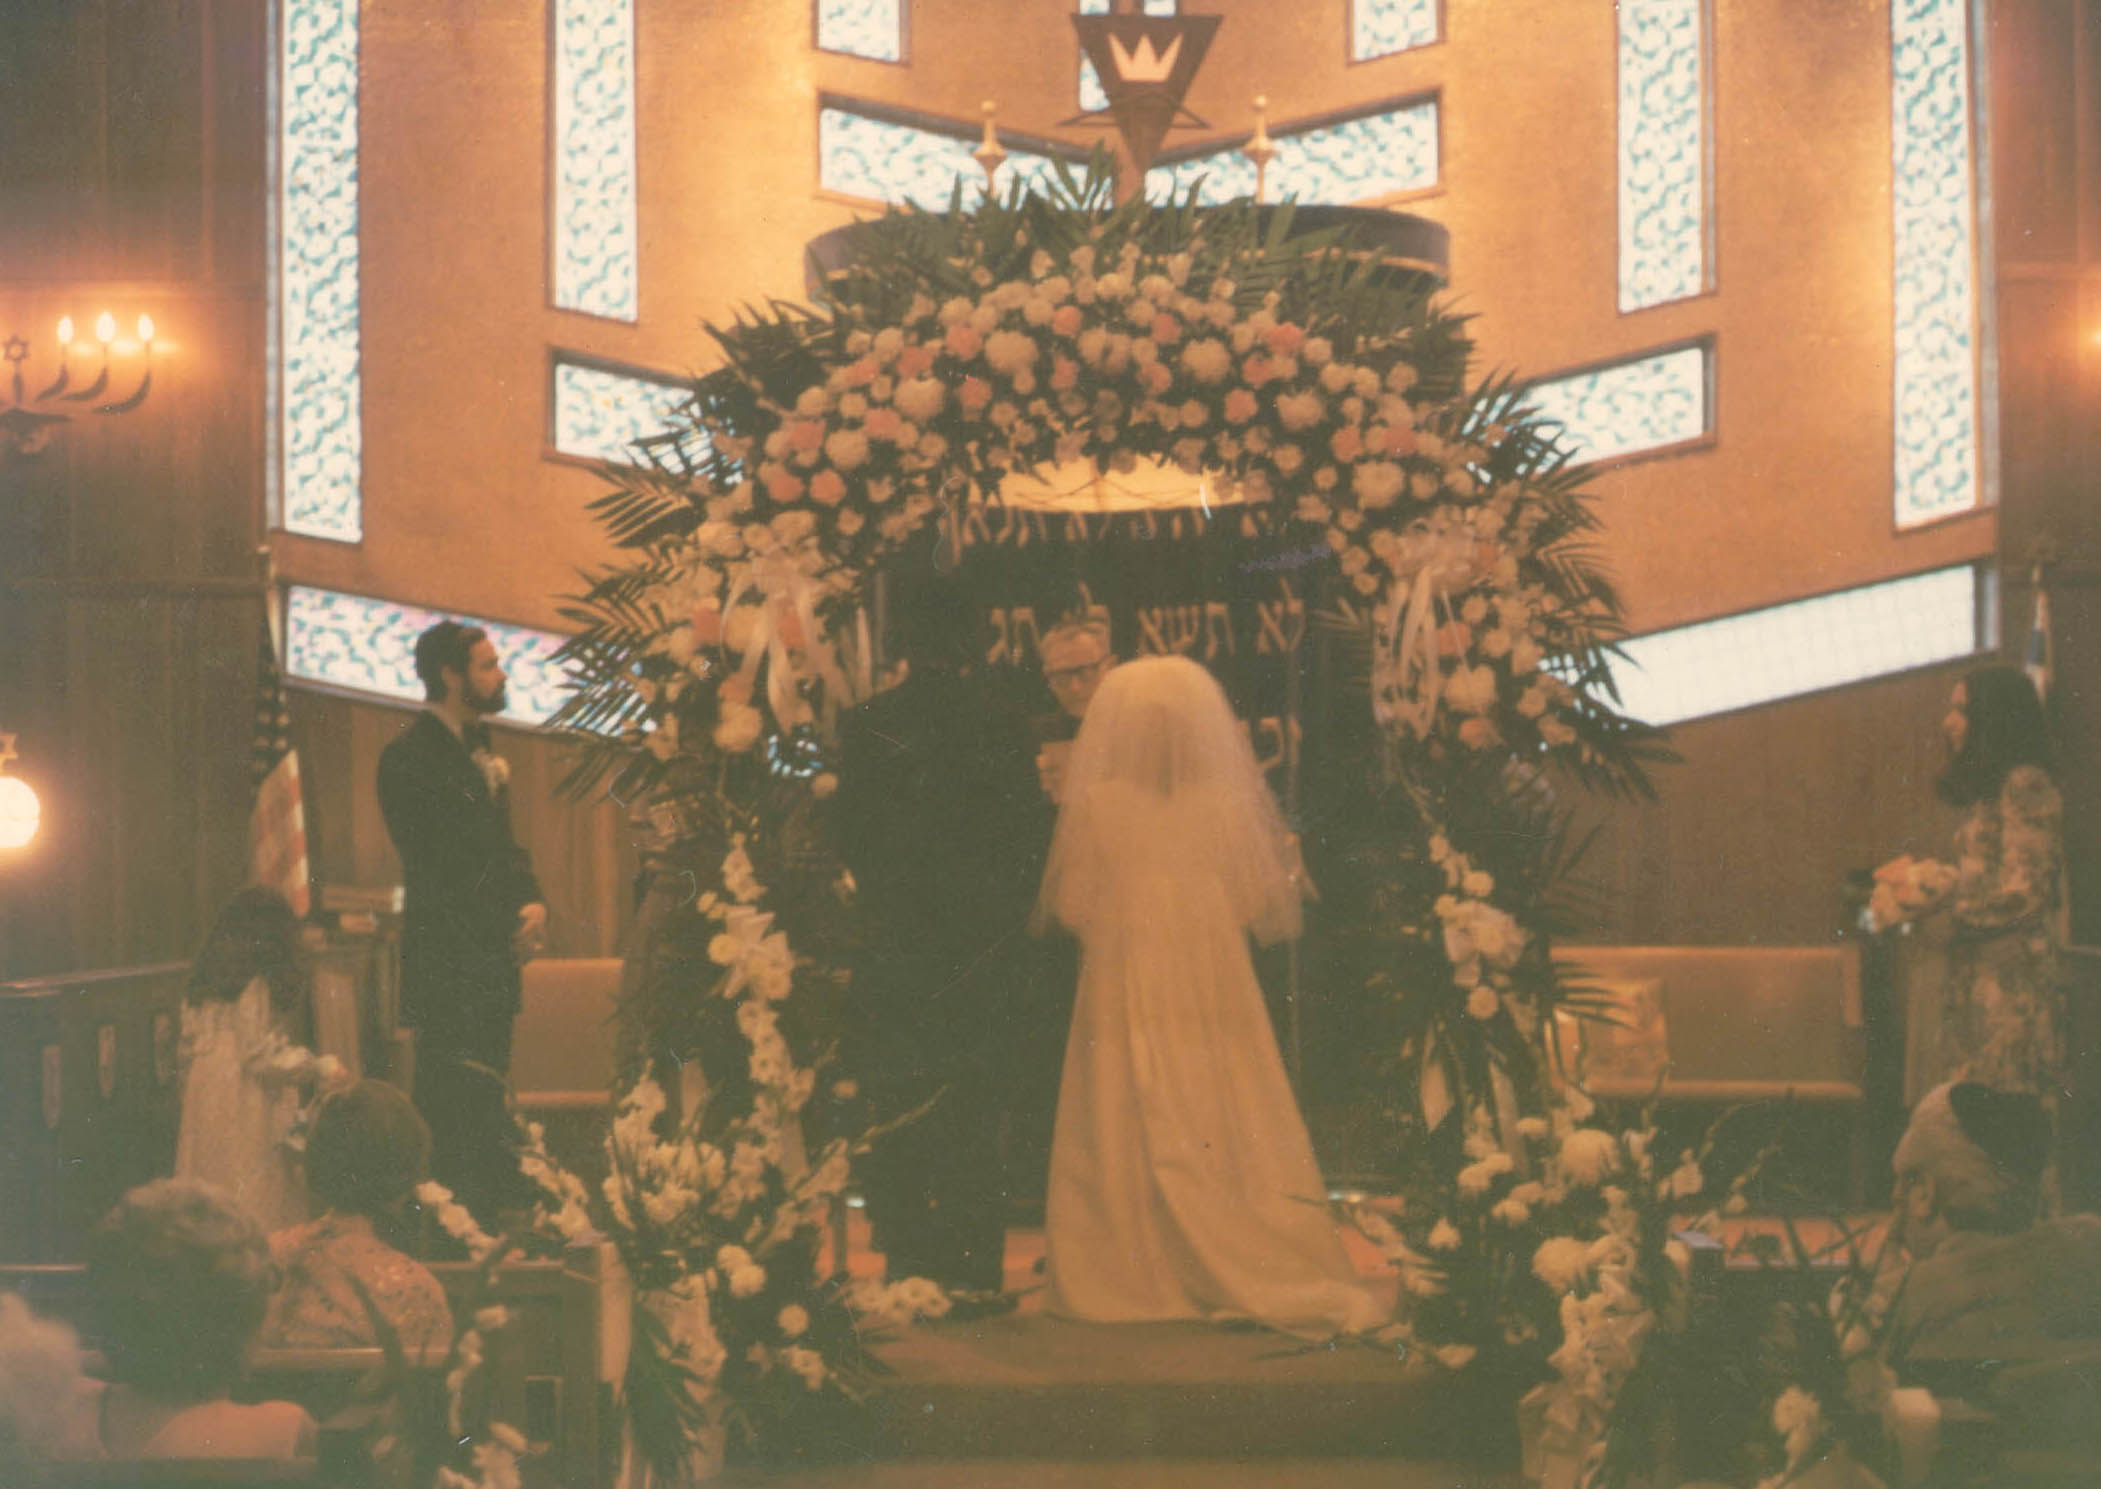 Wedding of Blanka's daughter, Shelly, in 1974 at a temple in New York.